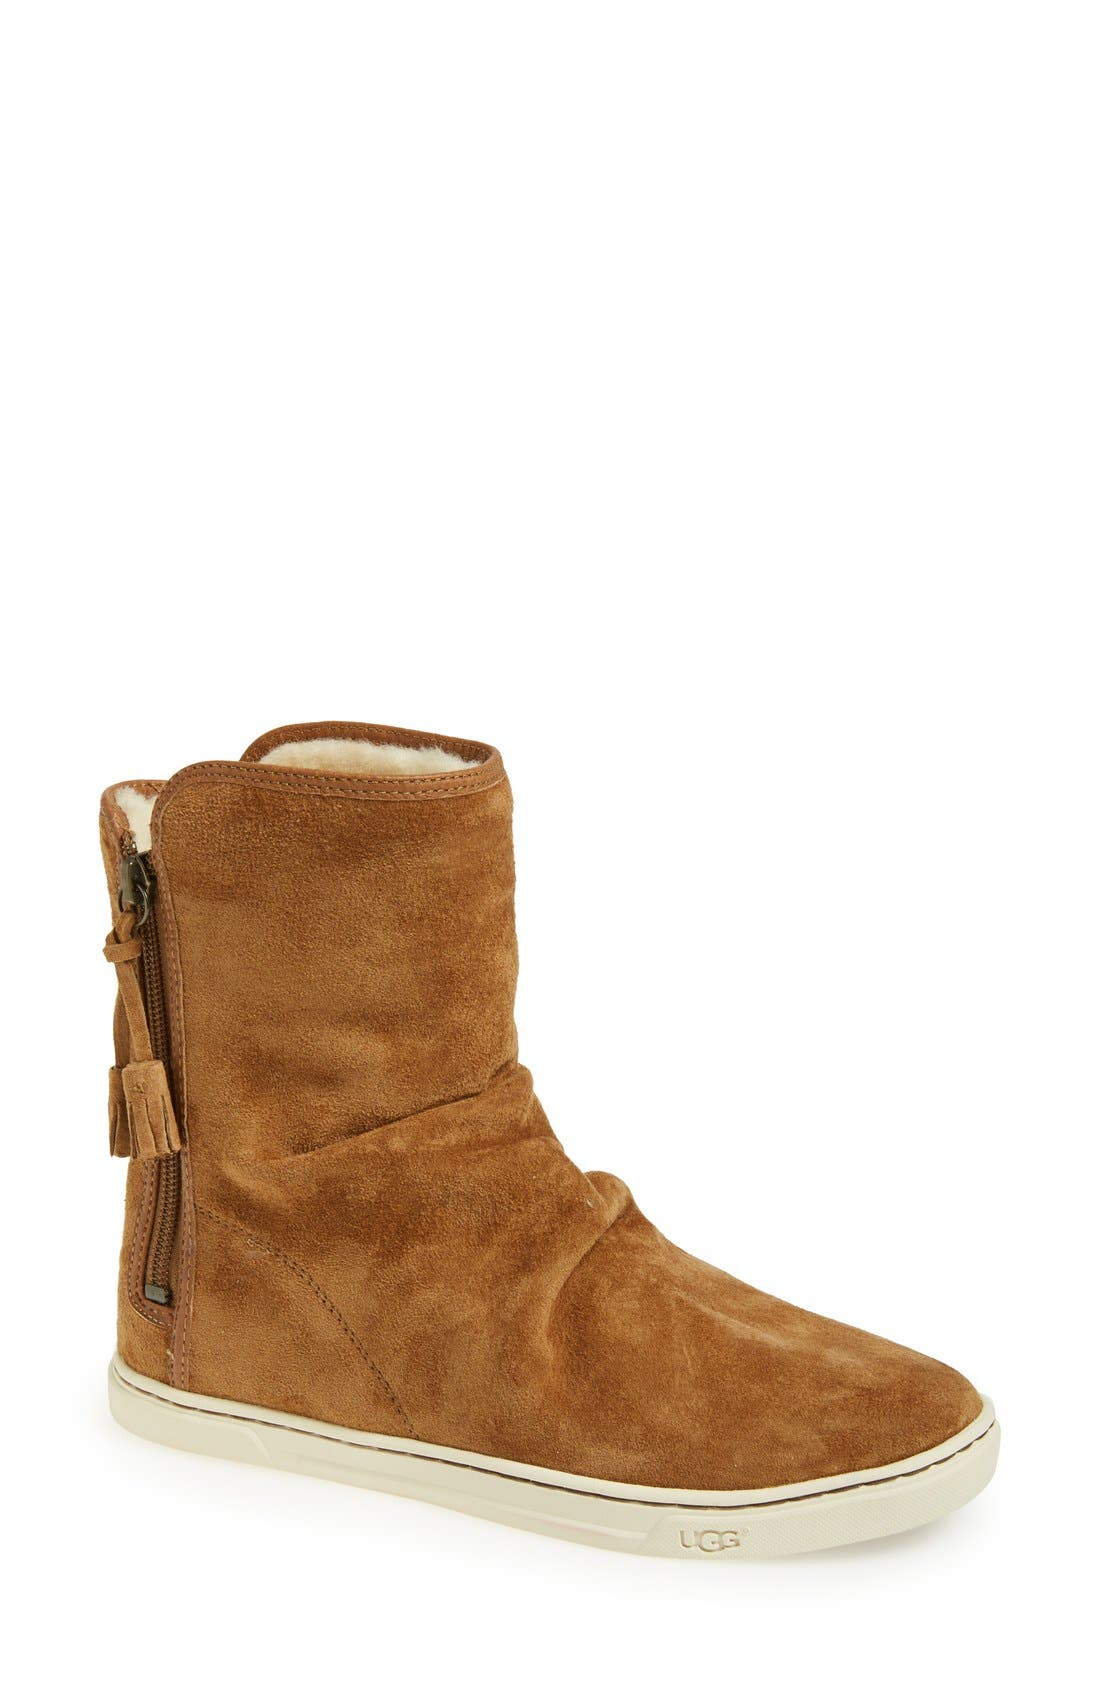 Main Image - UGG® Australia 'Becky' Water Resistant Suede Boot (Women)